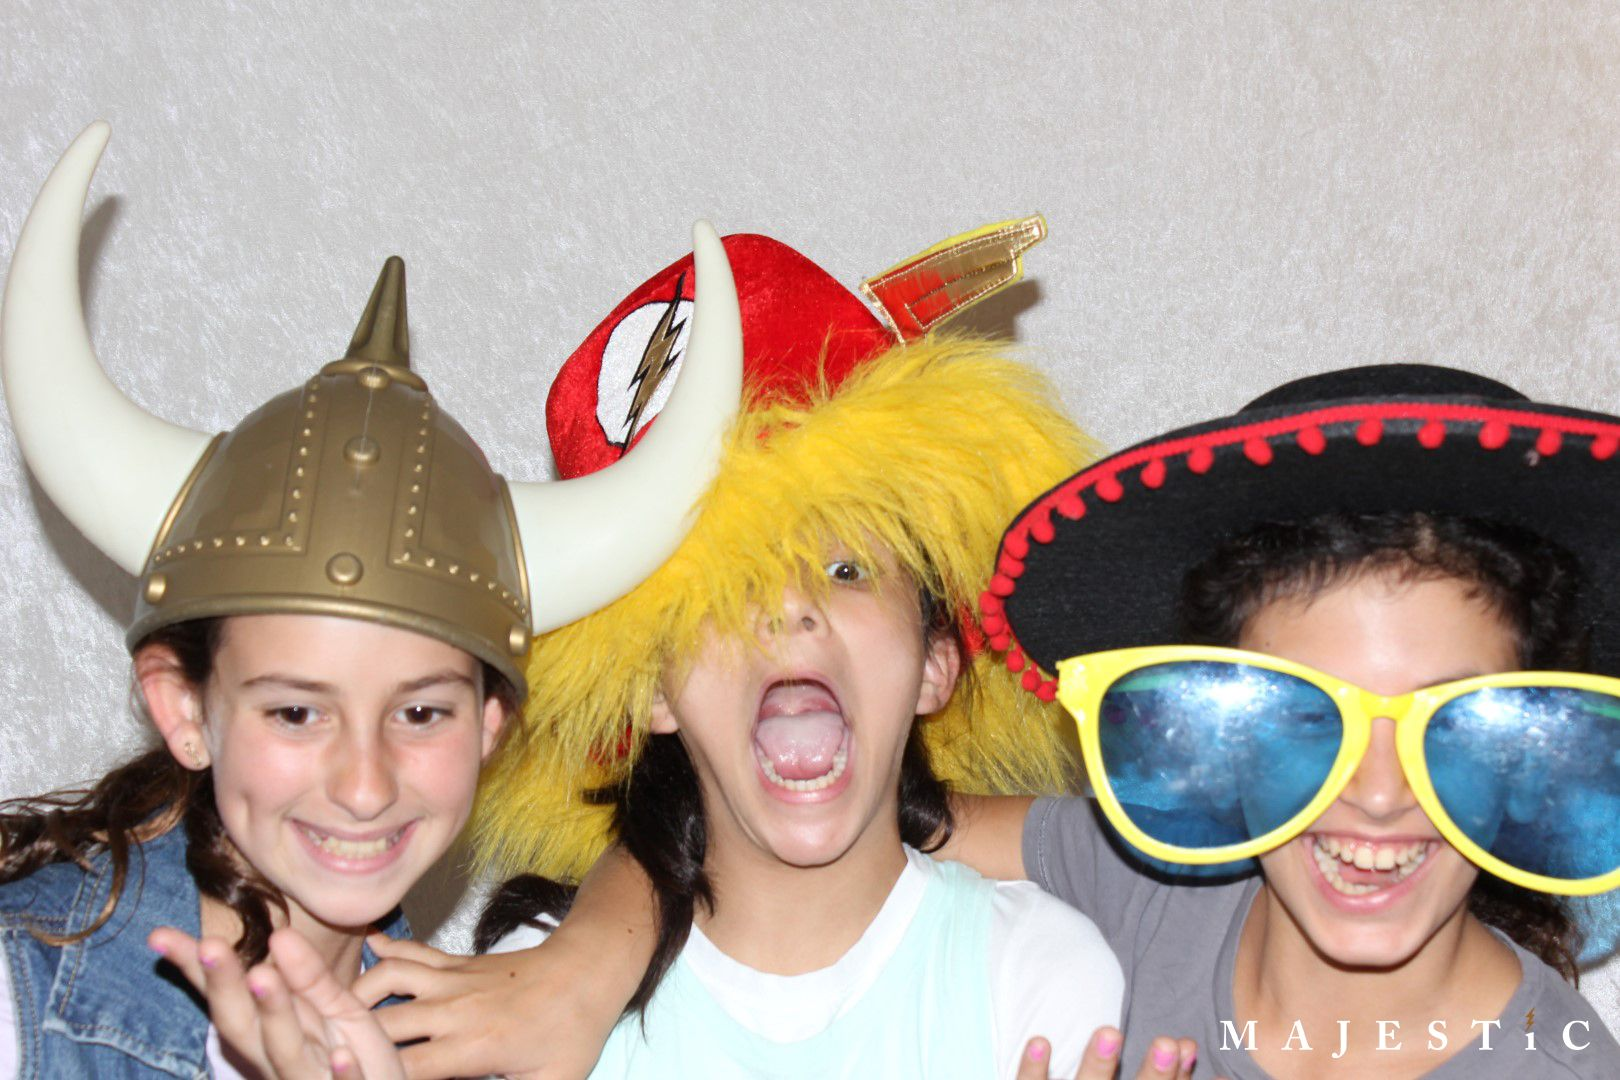 Photo by Majestic Events © #majestic #events #photobooth